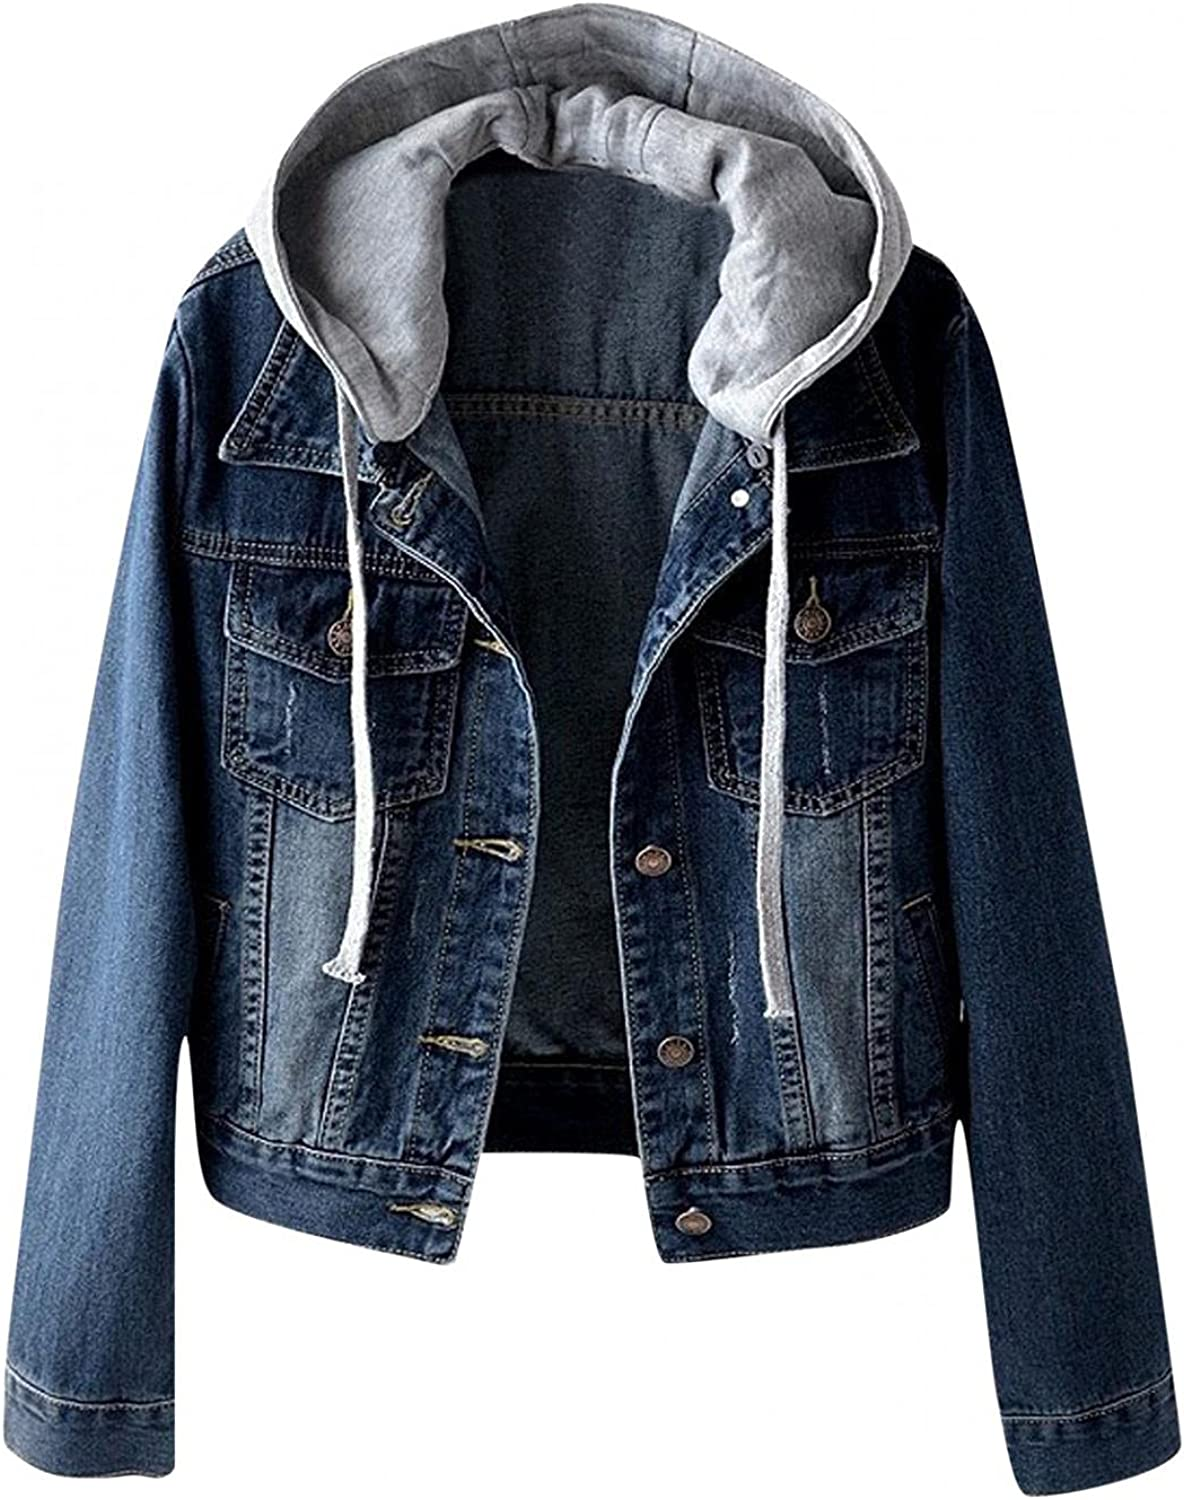 SUIQU Women's Classic Casual Detachable Hoodie Denim Jacket Distressed Button Down Long Sleeve Hooded Jacket with Pocket